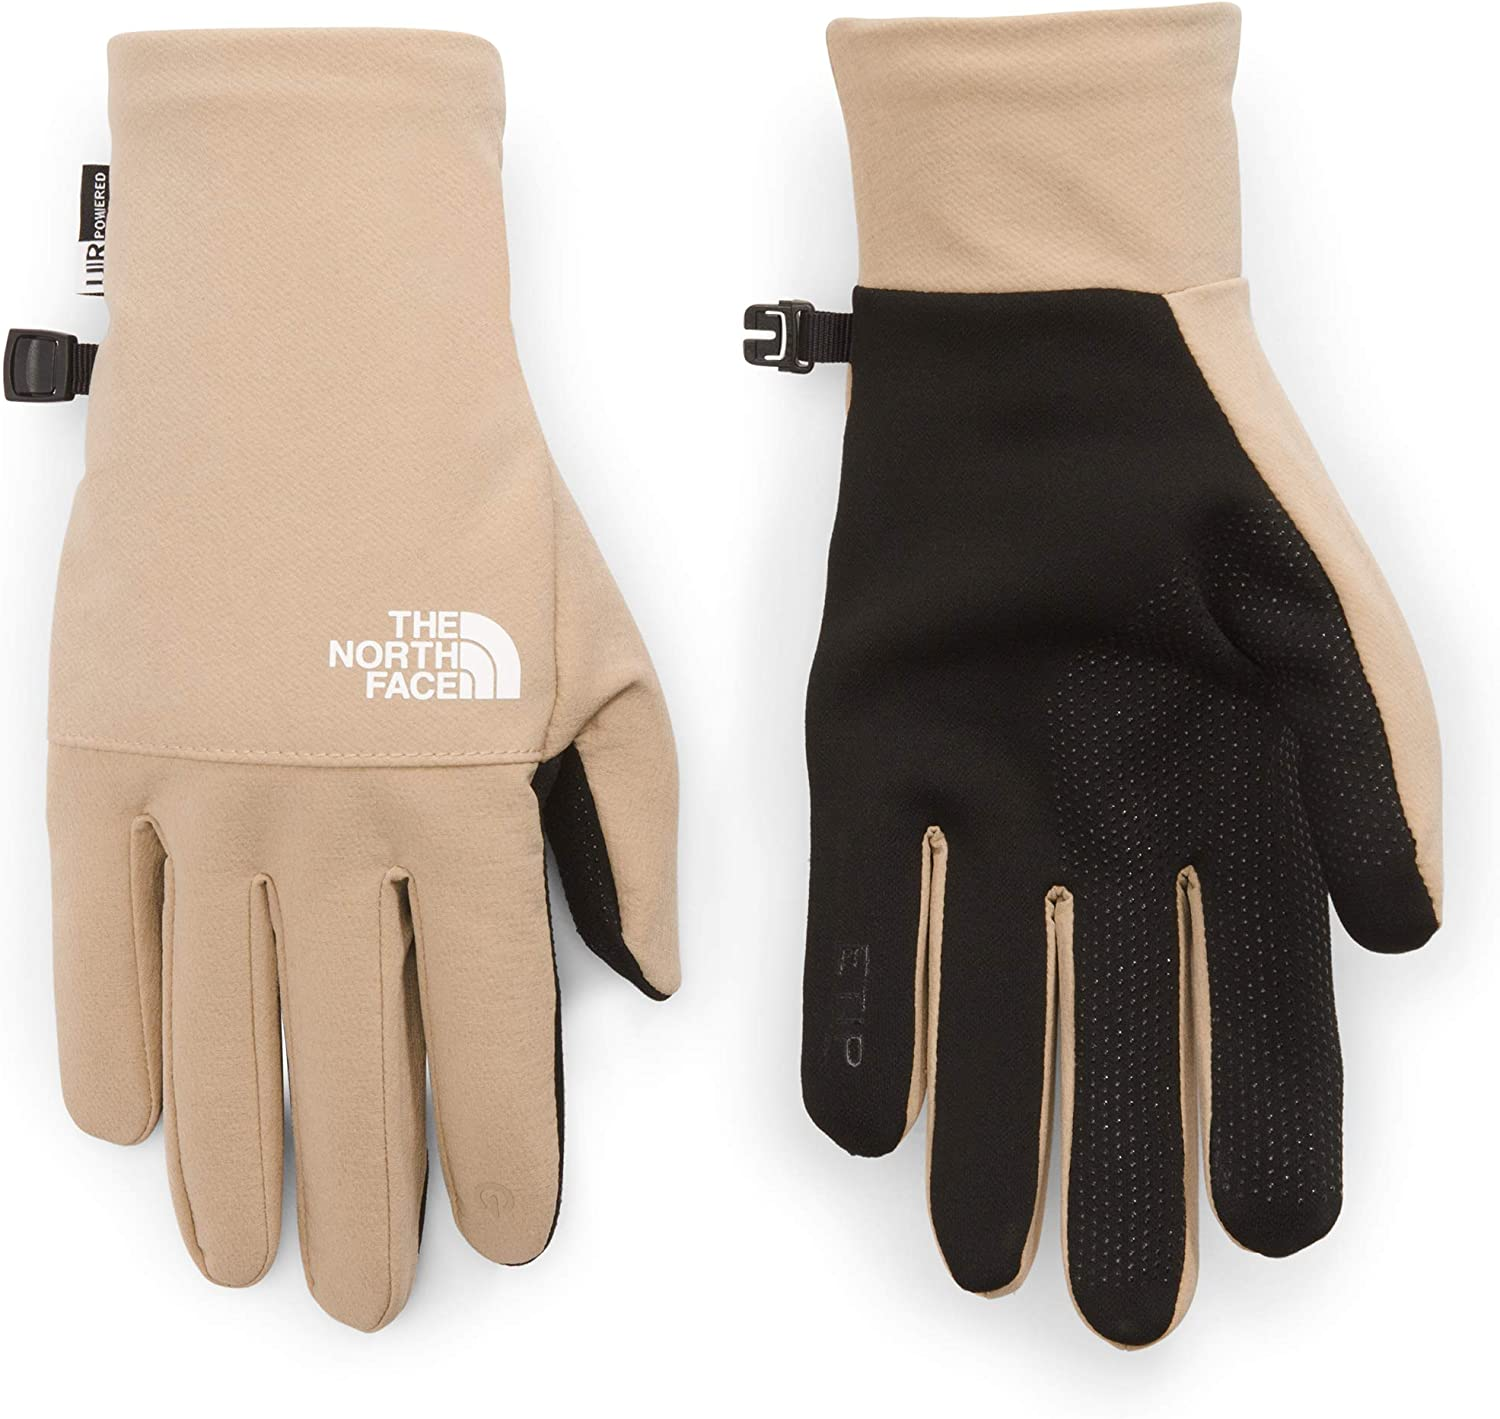 The North Limited Special Price Face Etip Tech Recycled Glove SEAL limited product